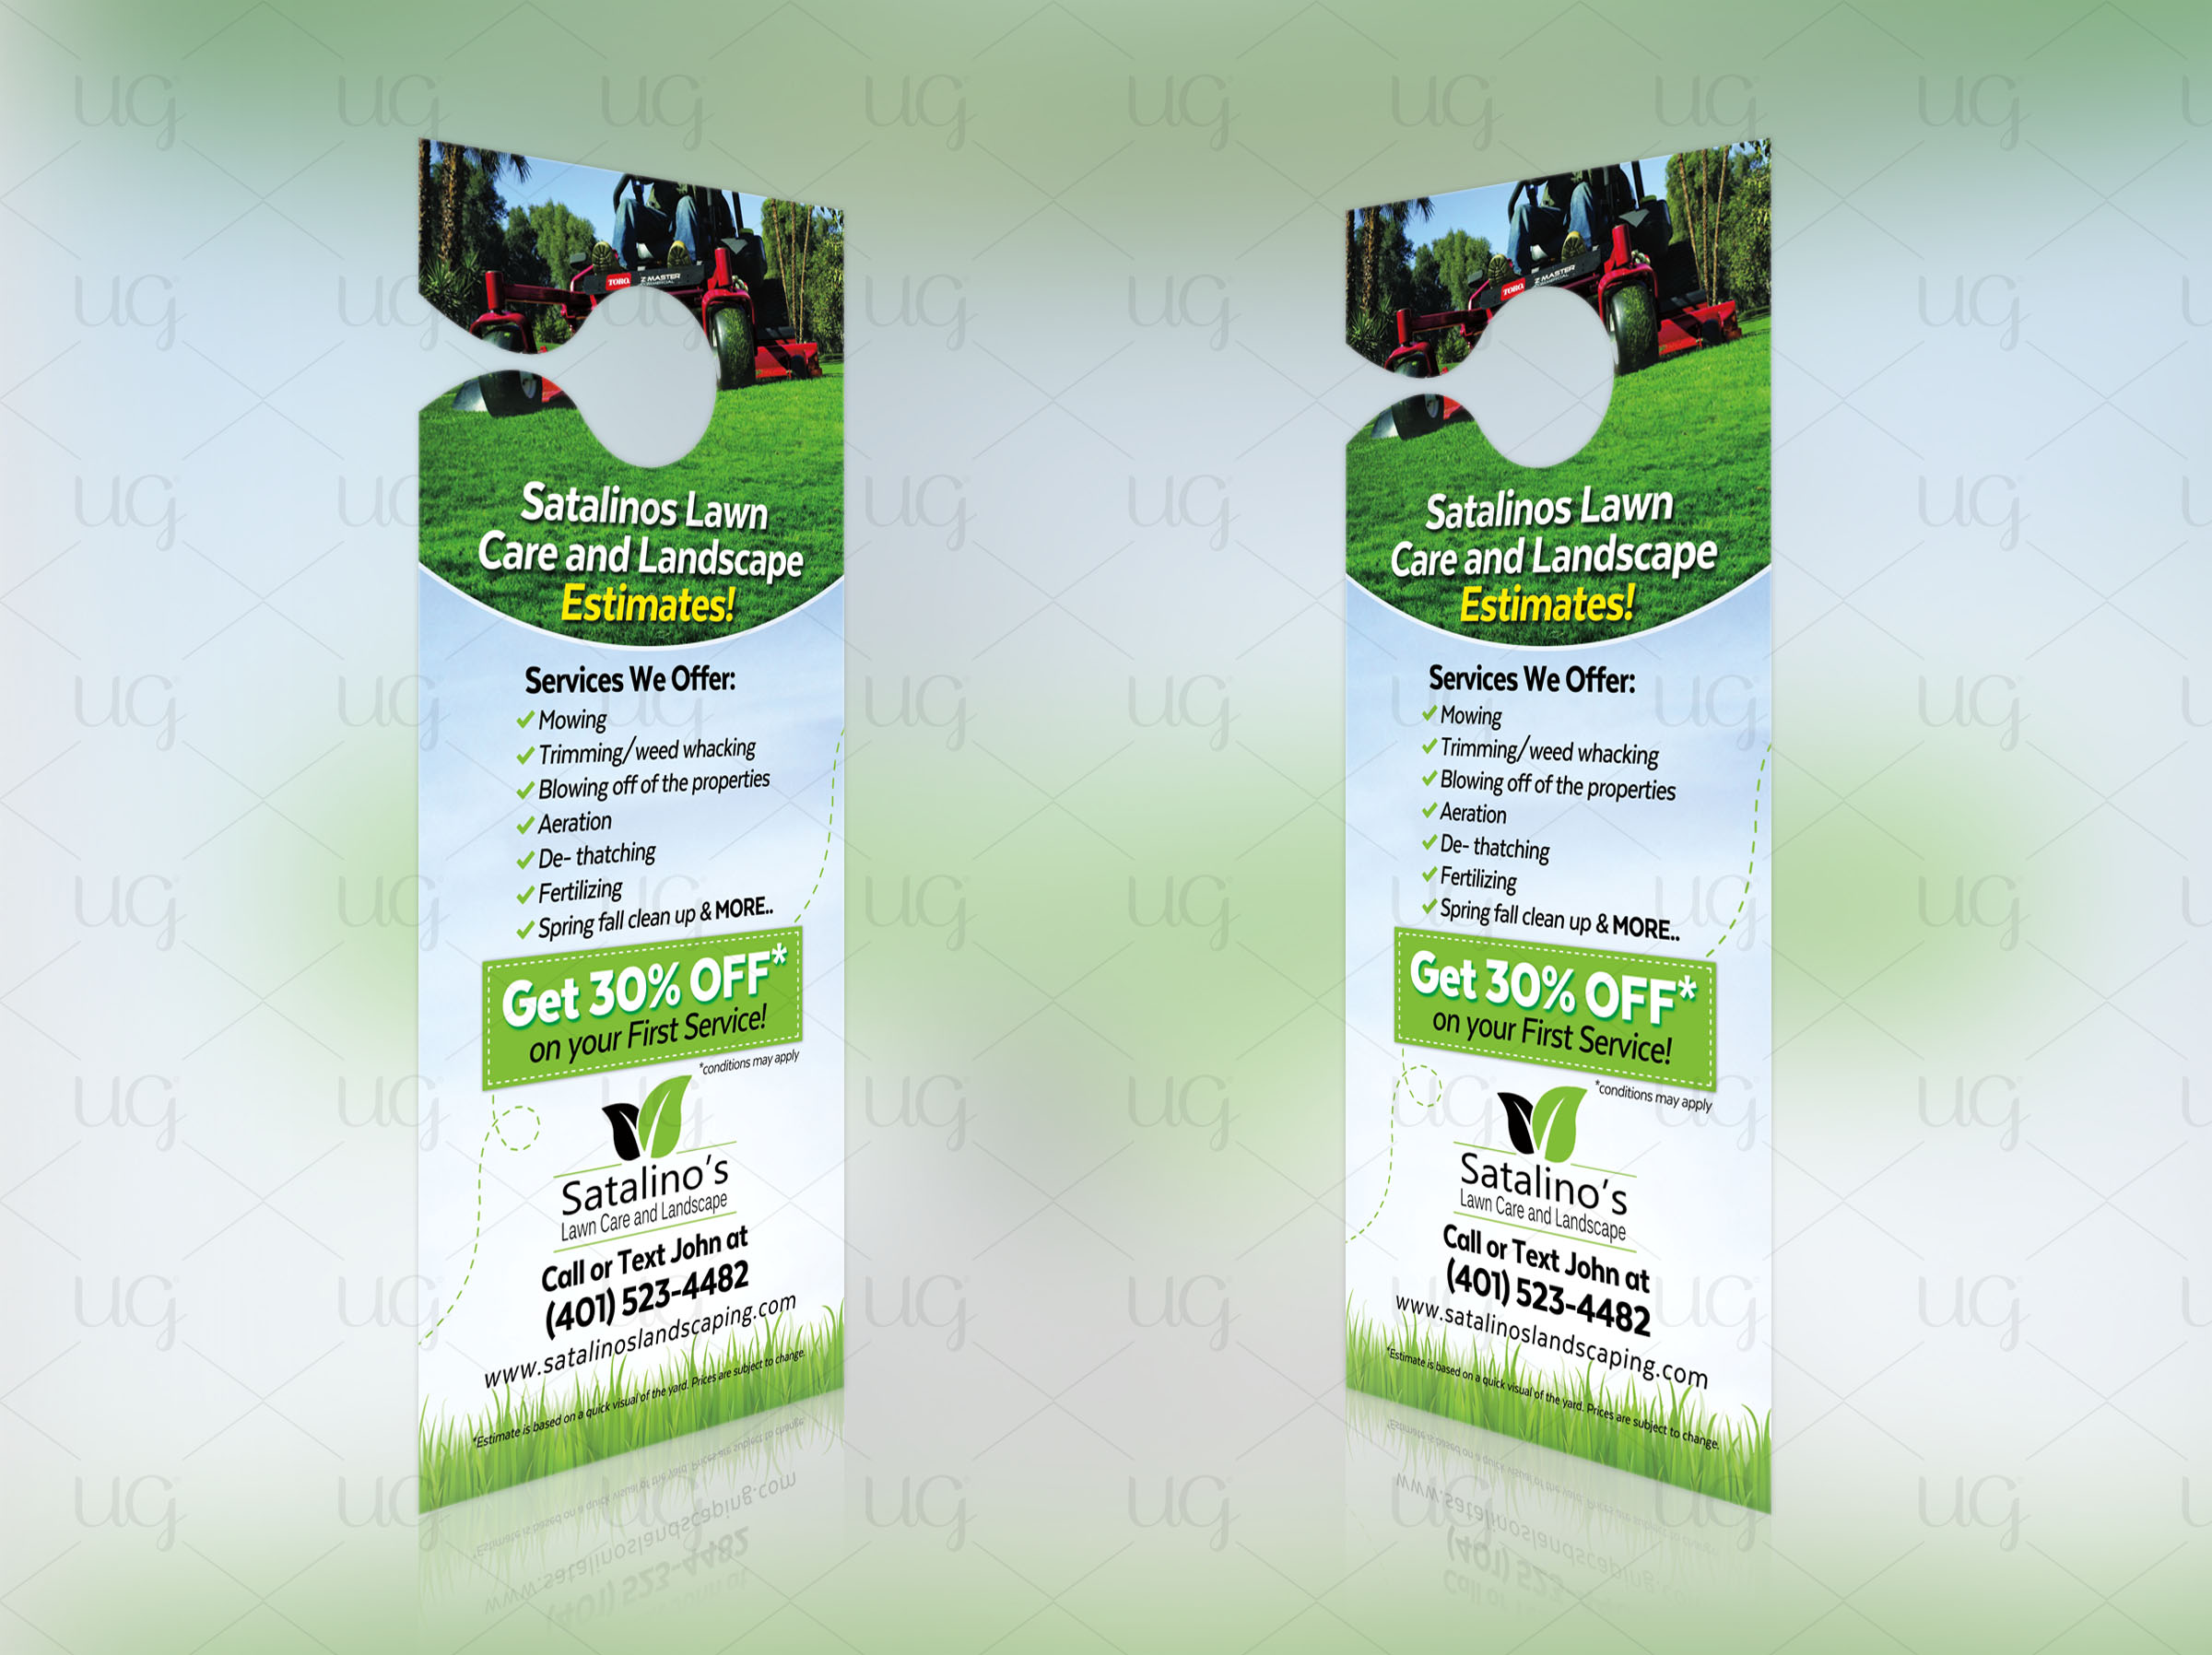 Satalinos_Lawn_Care_and_Landscape_DH_final_look_by_ug_2